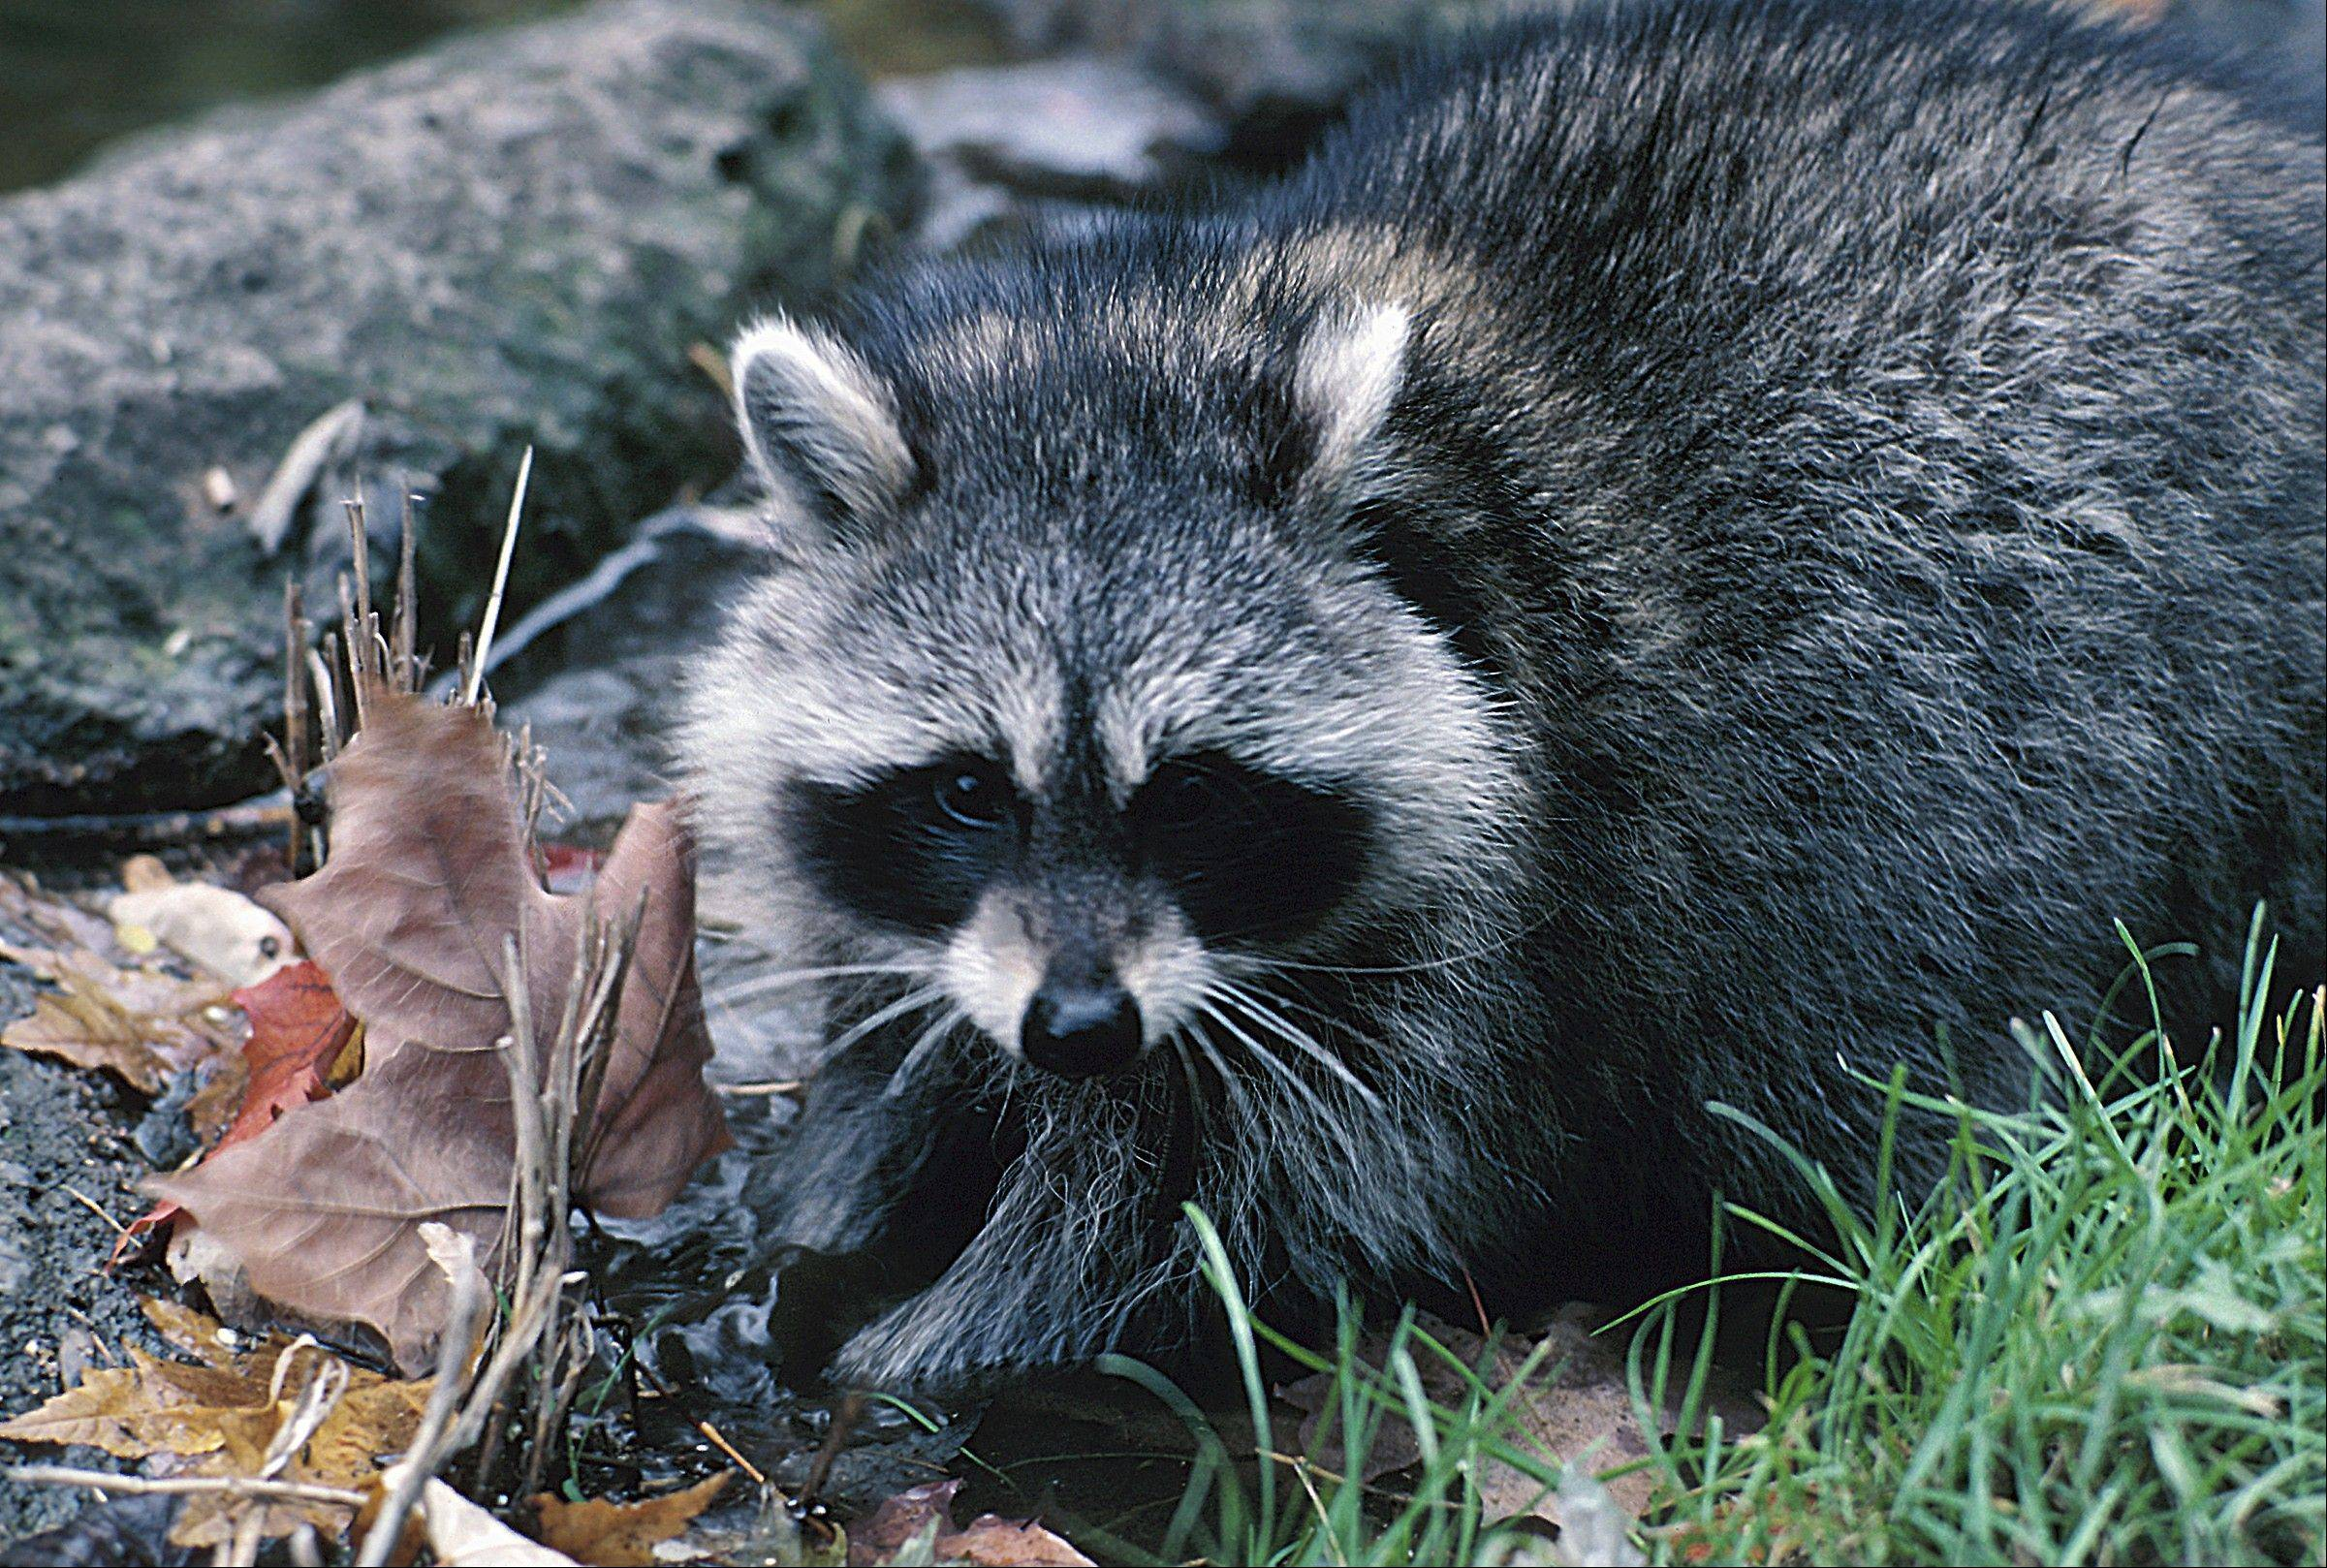 The raccoon has an undeniable cute factor -- unless they are standing on your garbage cans sneering at you. But would you go out to root for them?